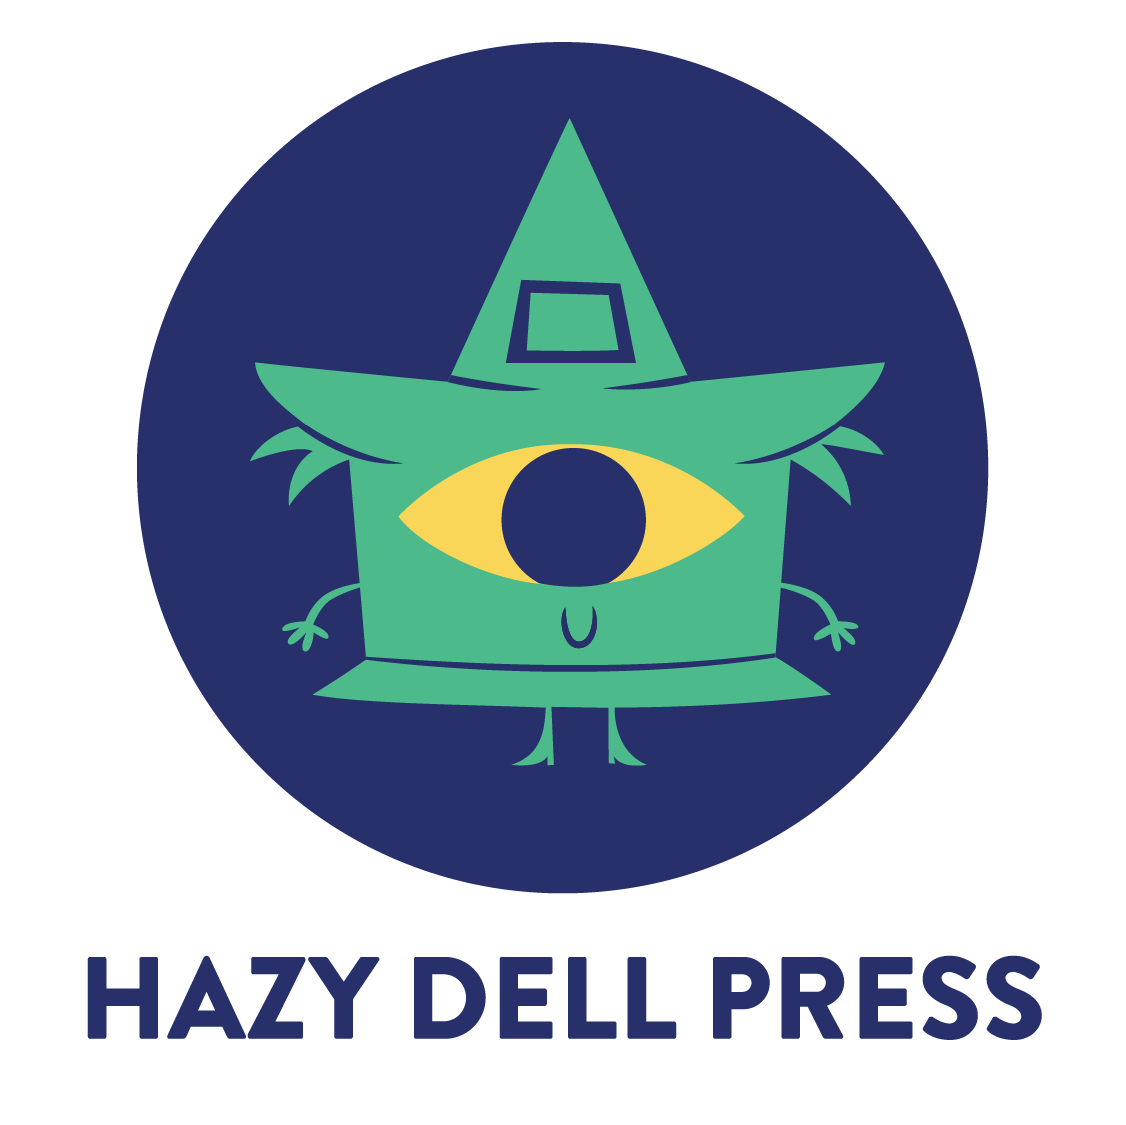 Logo for Hazy Dell Press